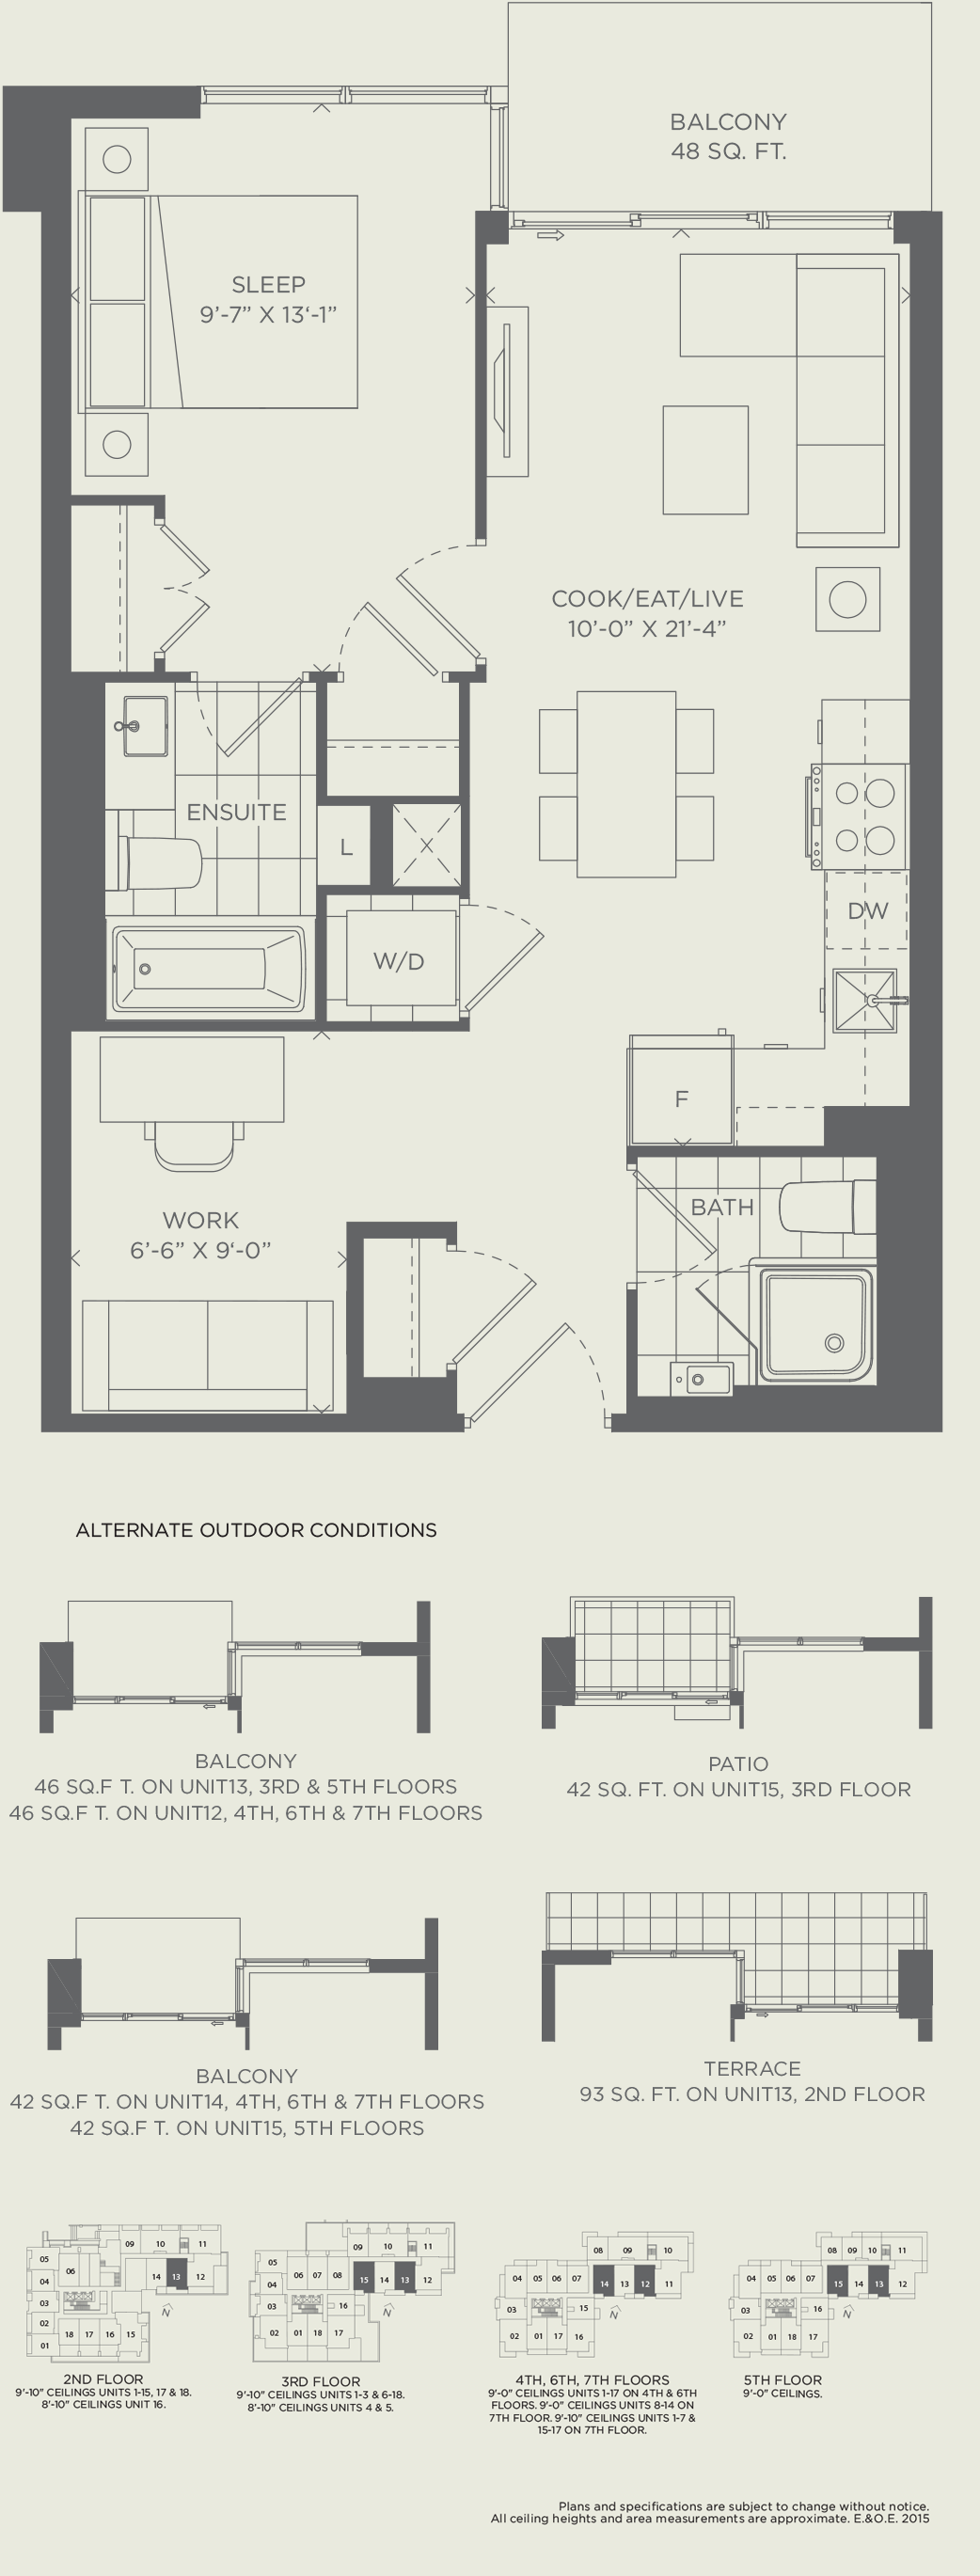 Suite 1E 628 SQ. FT.